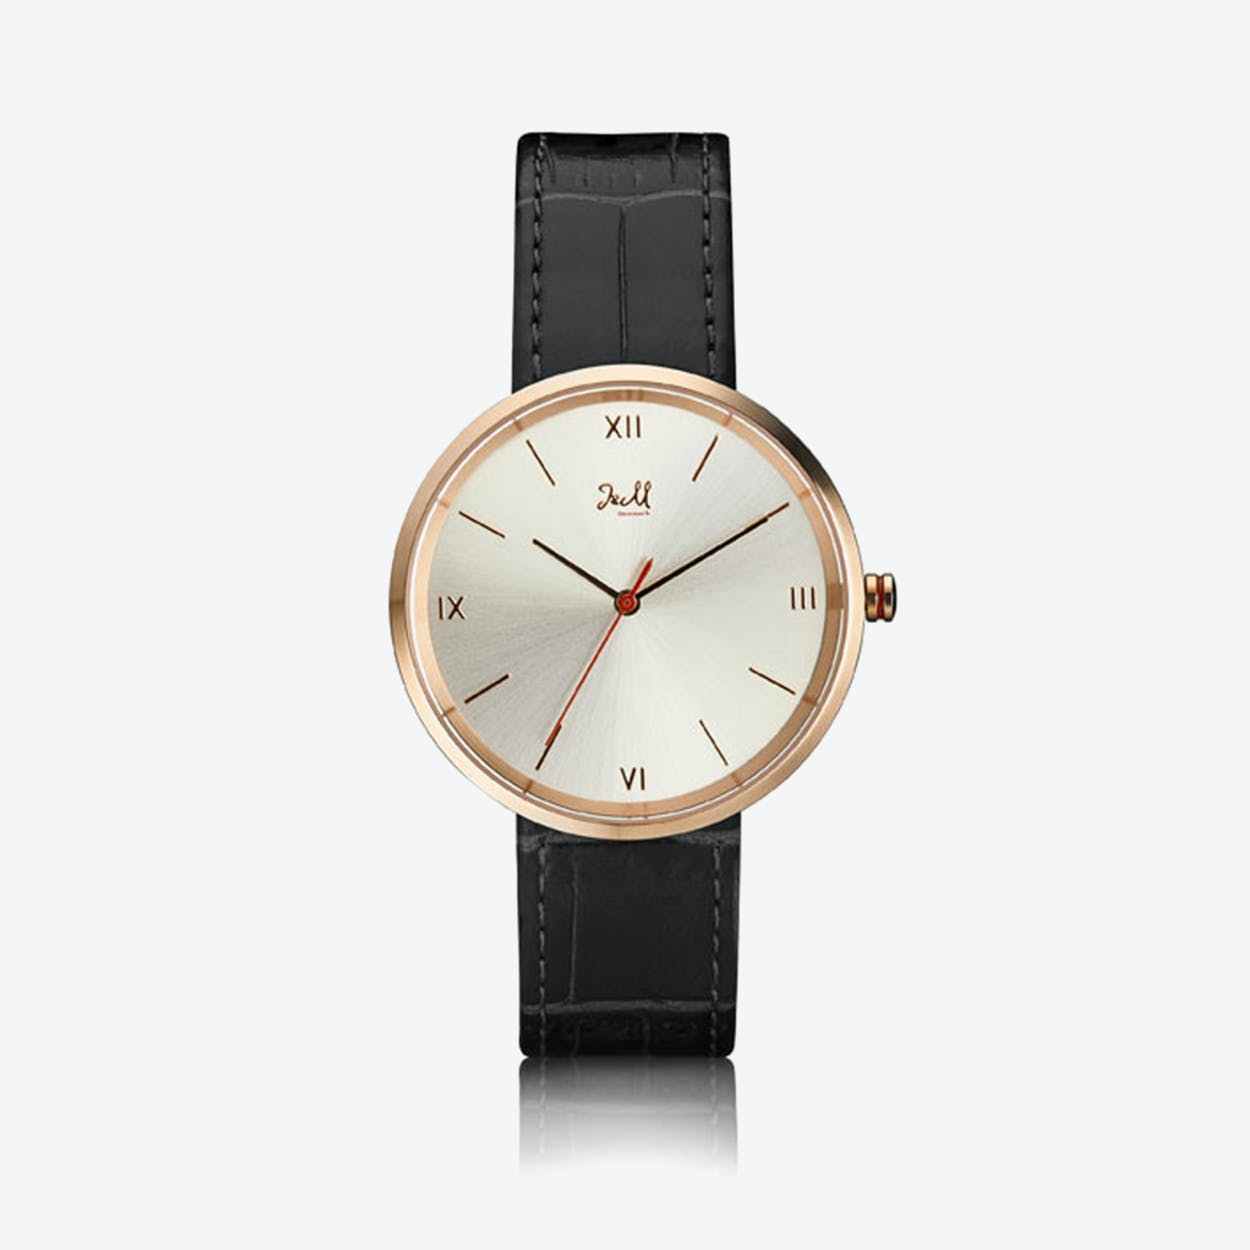 J&M Watch M Nordic360 M1 in Rose Gold with Black Leather Strap